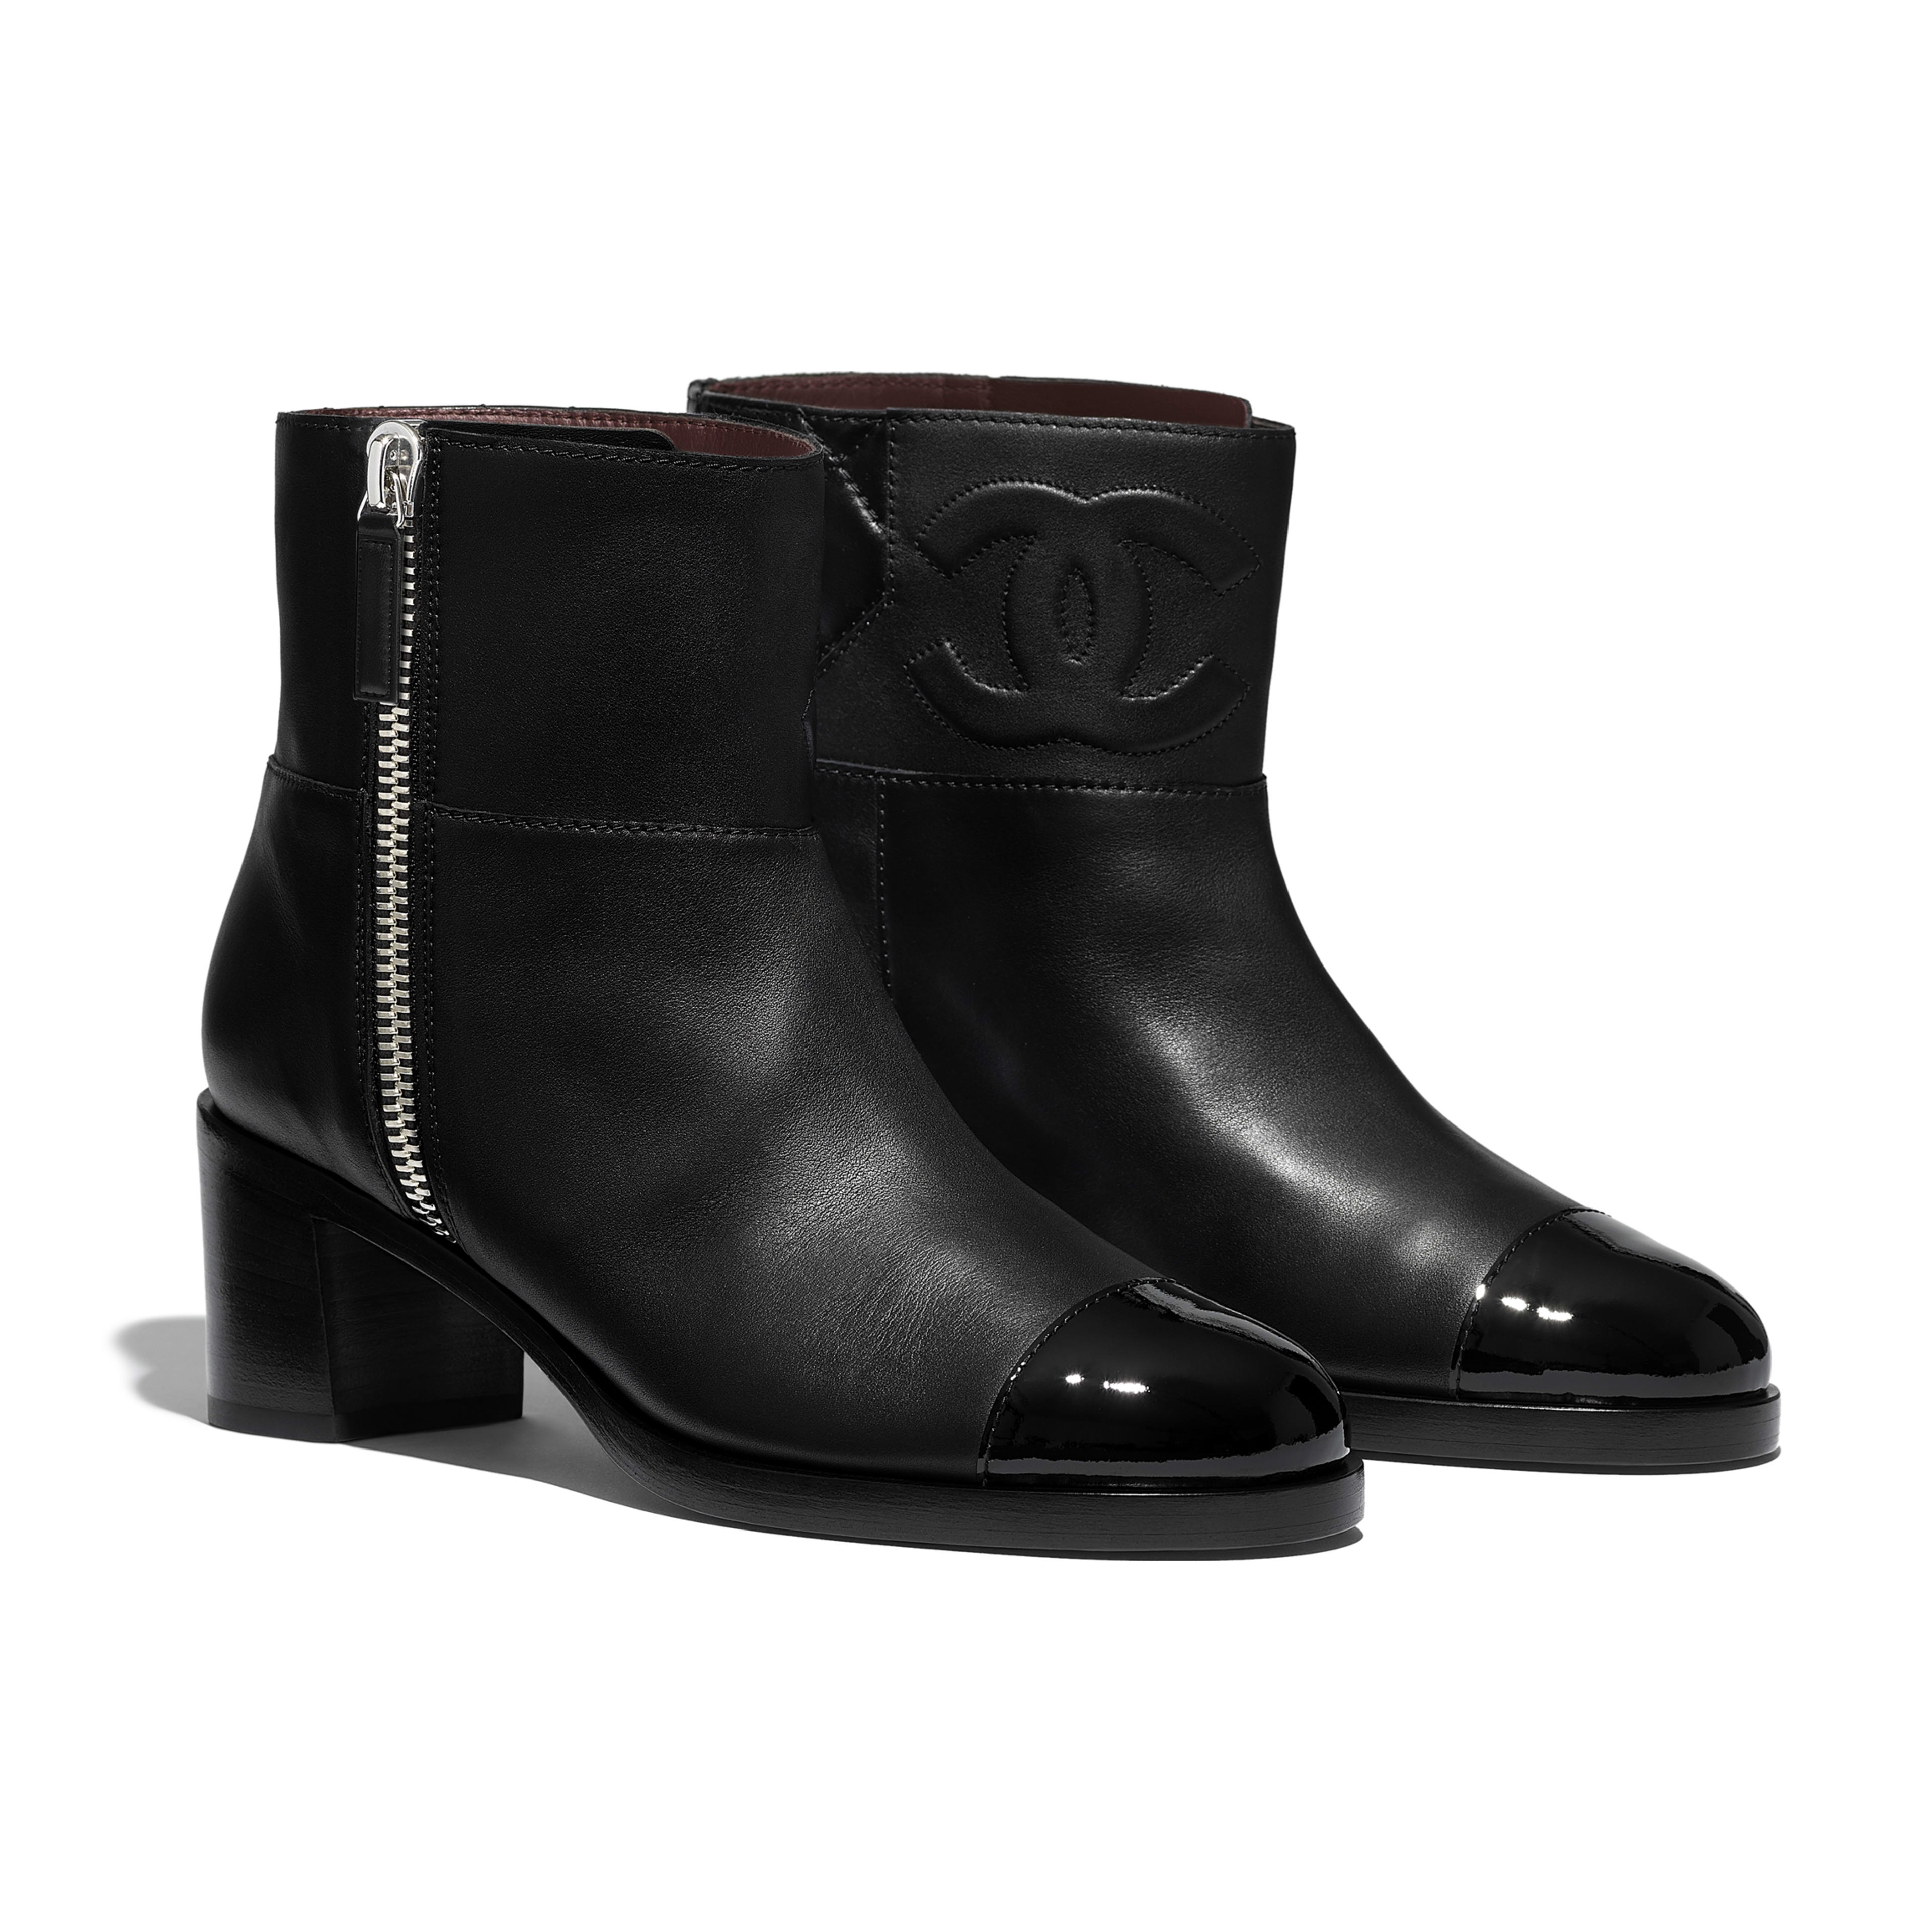 Ankle Boots - Black - Calfskin & Patent Calfskin - Alternative view - see full sized version